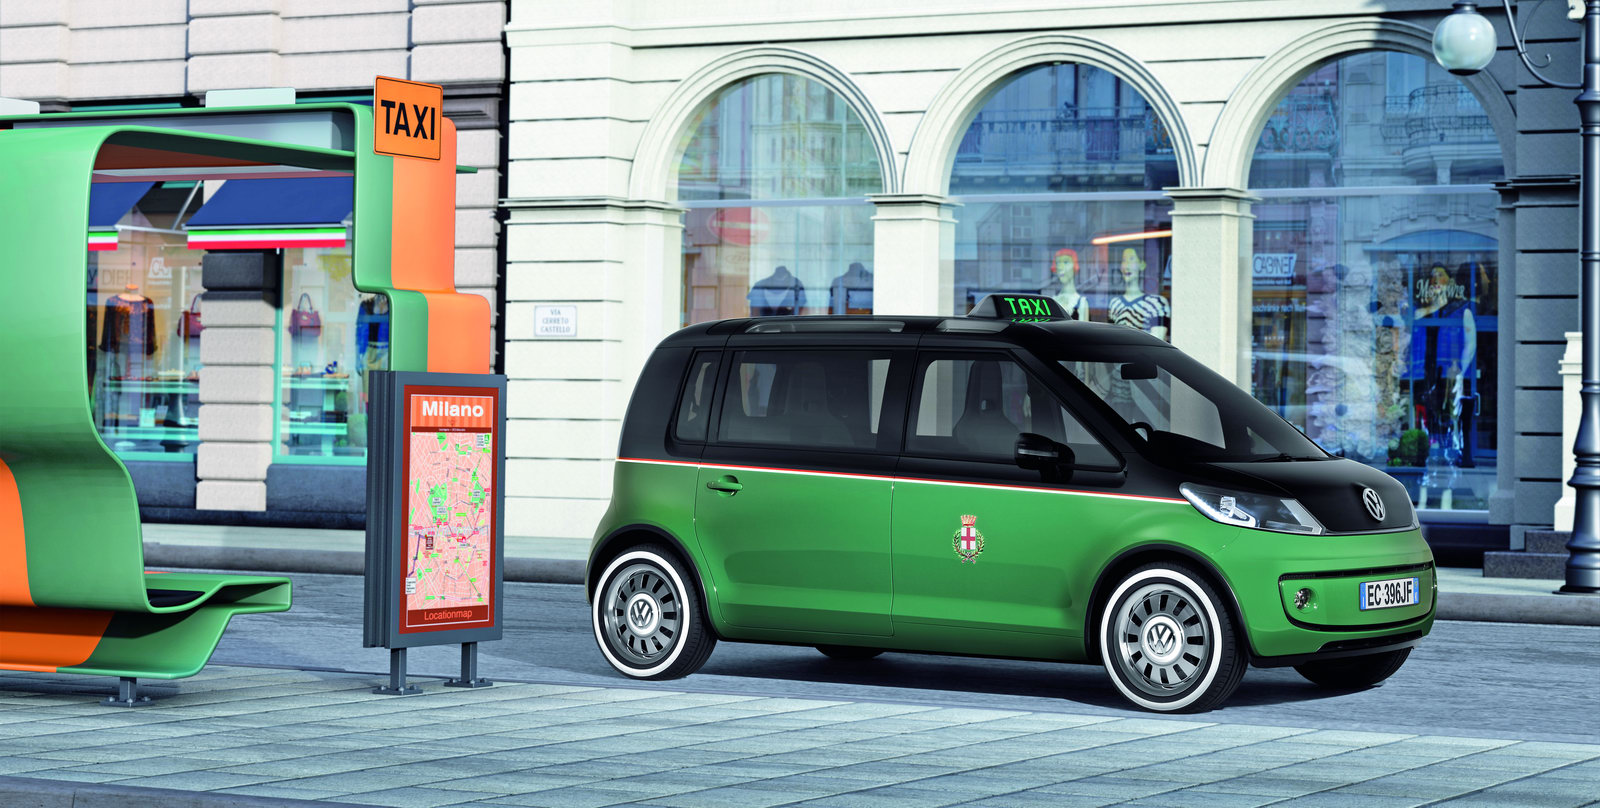 VW Milano Taxi. Another concept shown back in 2010.